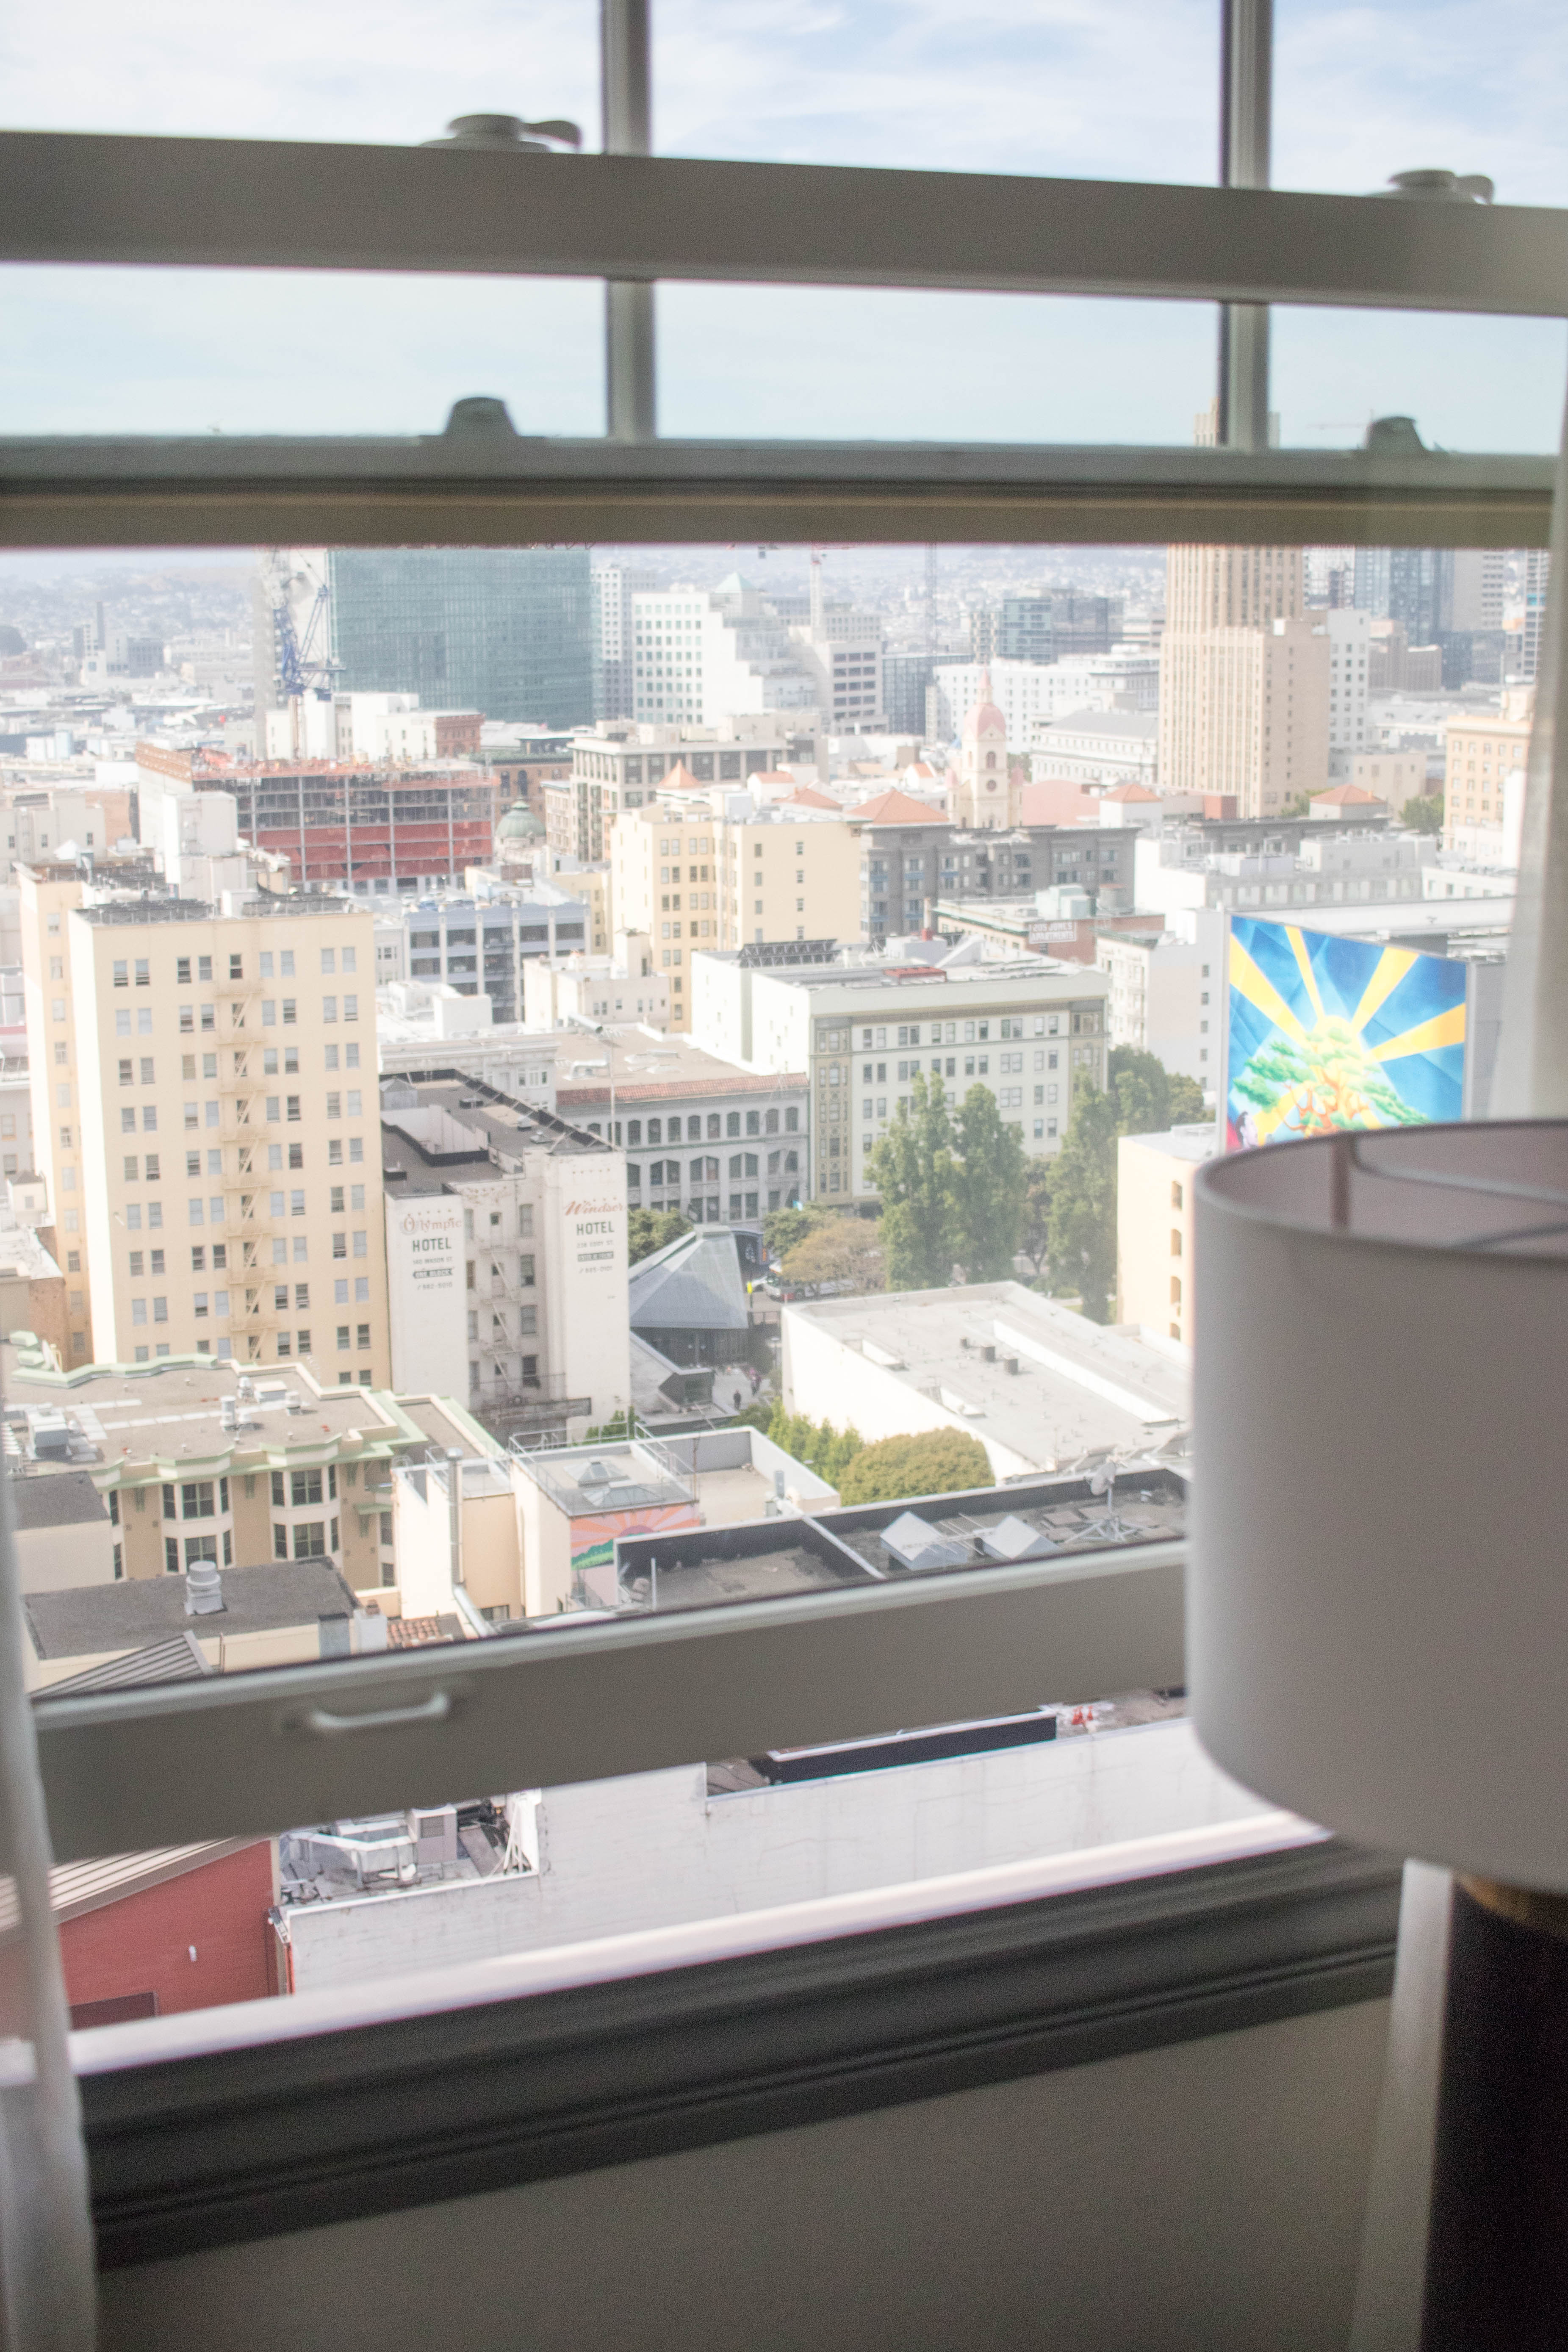 San Francisco hotel view hotel spero #hotelspero #sanfrancisohotel #hotelreview